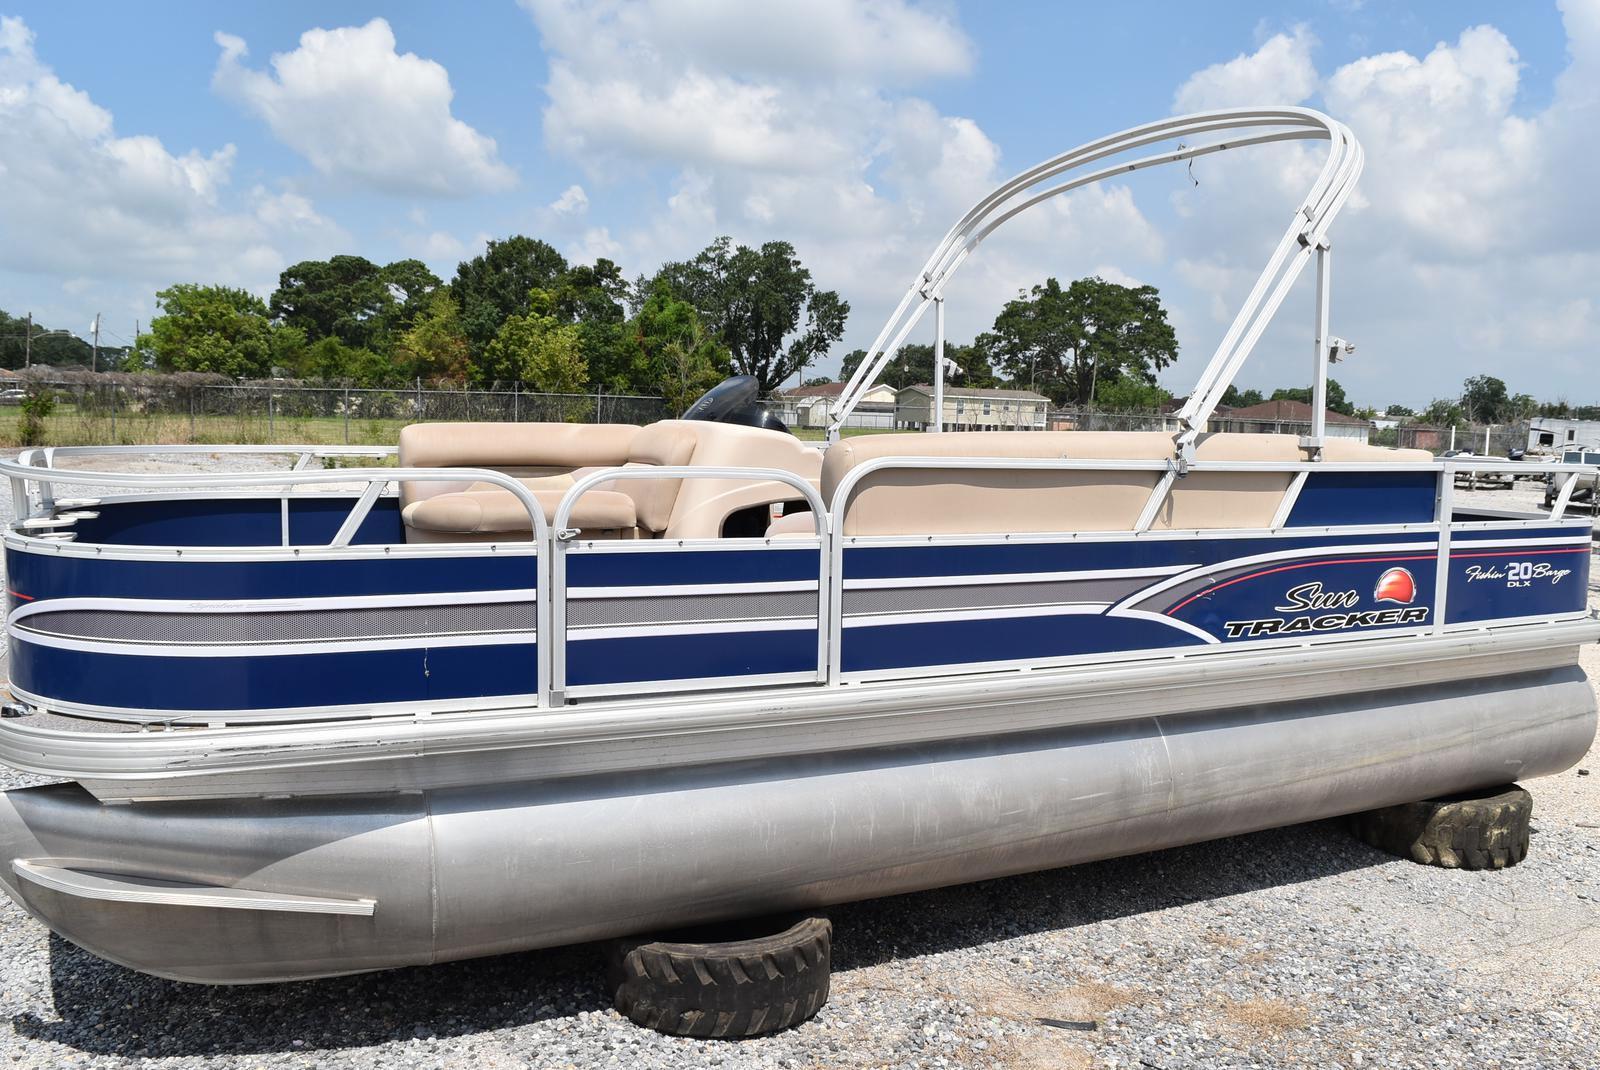 2015 Sun Tracker boat for sale, model of the boat is 20 Party Barge & Image # 1 of 6